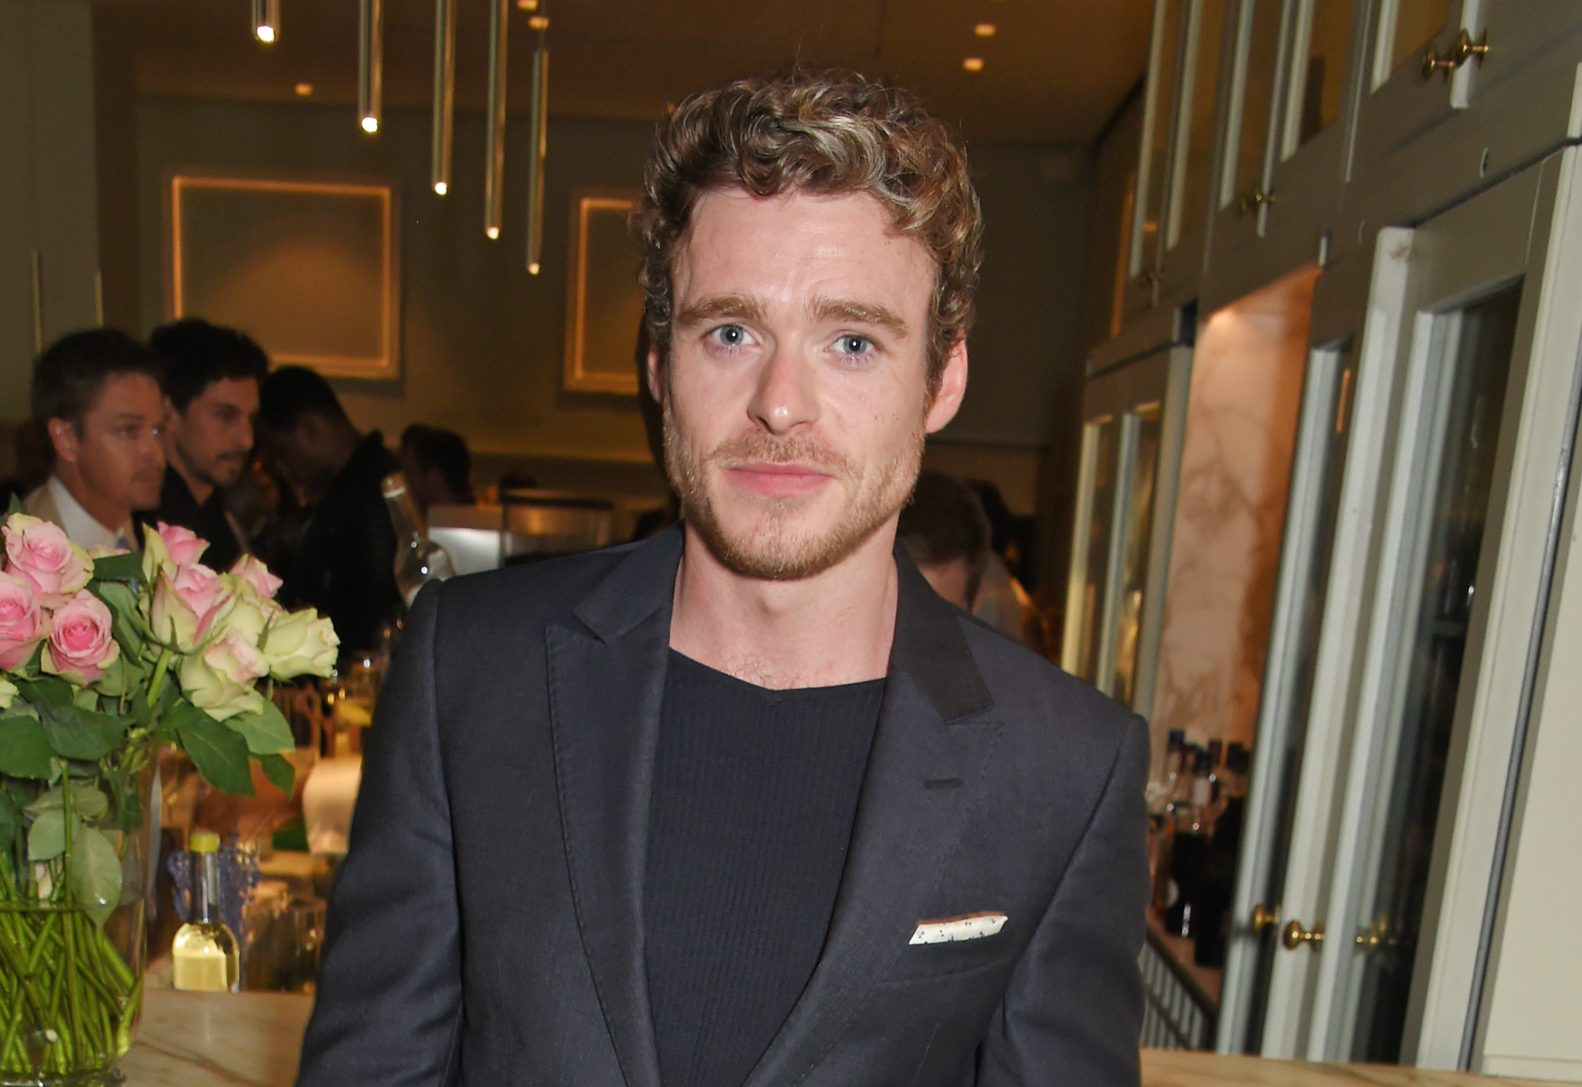 Bodyguard's Richard Madden 'taunted for acting lessons' as call-centre colleagues 'thought he was gay'